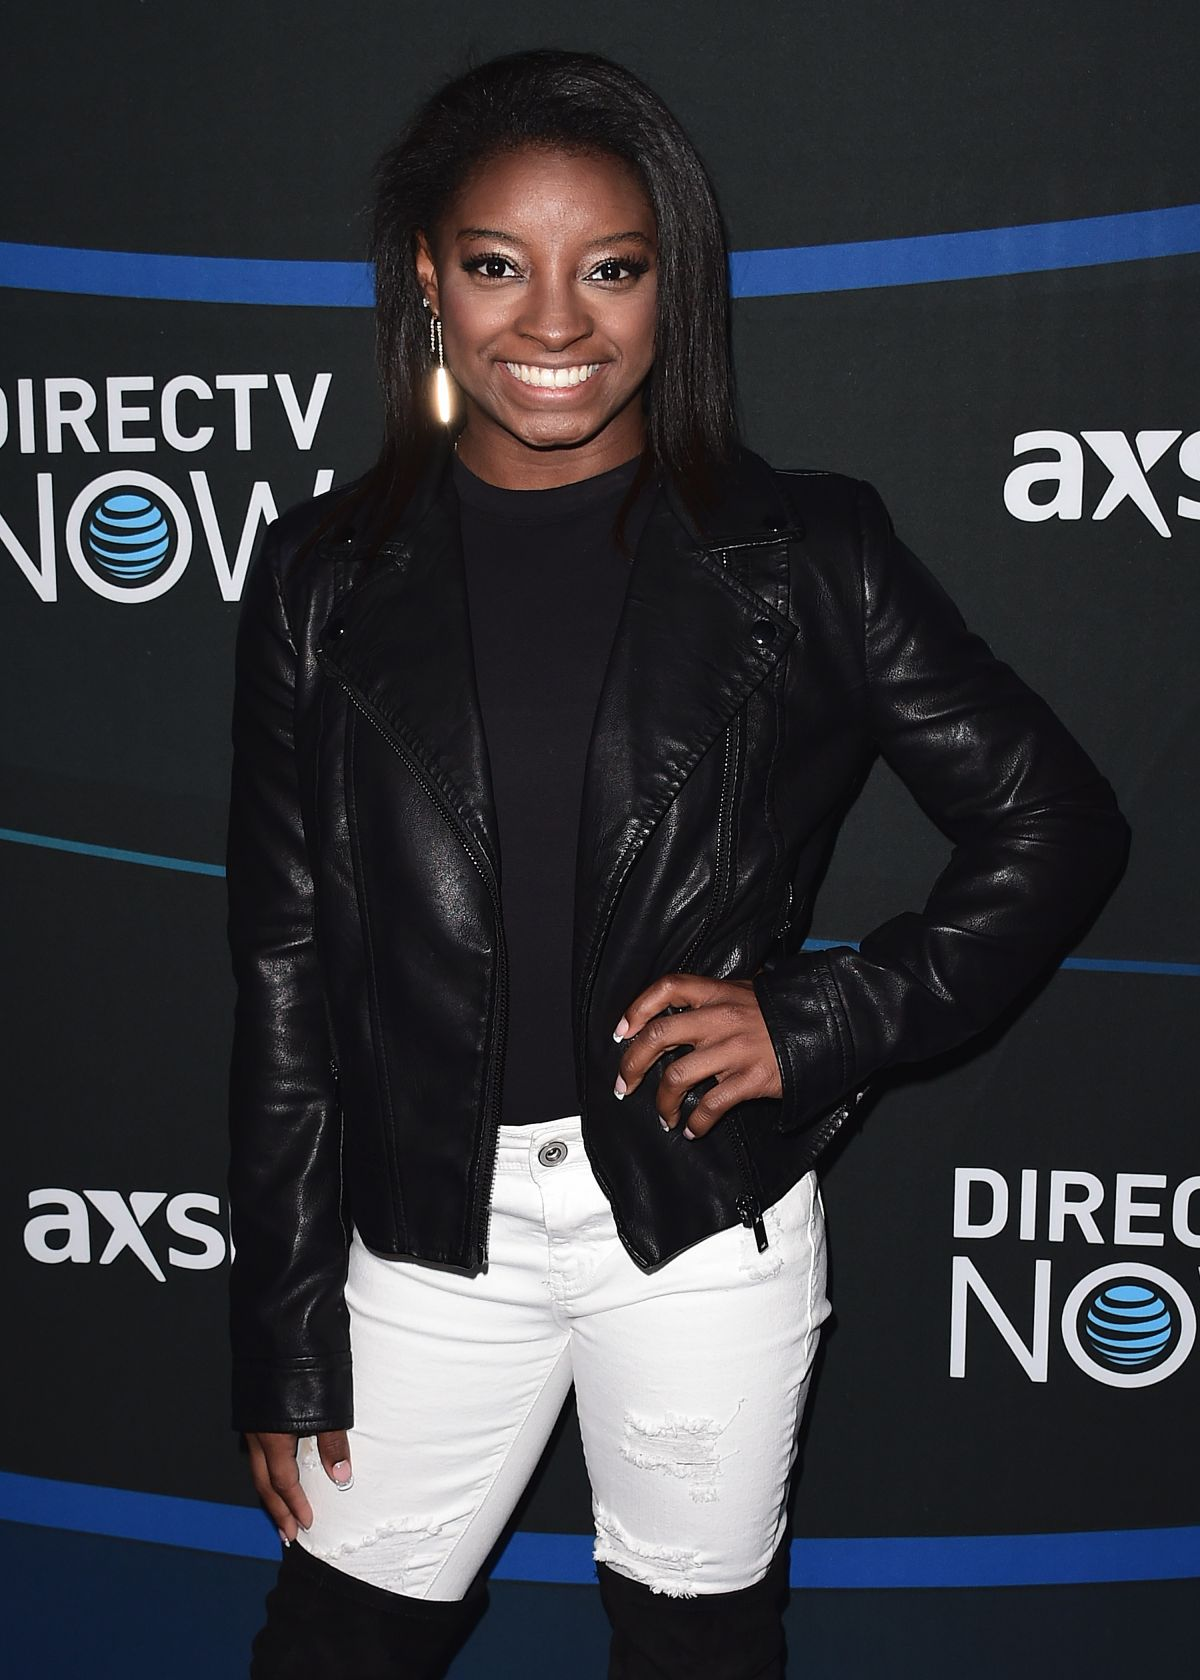 SIMONE BILES at 2017 Directv Now Super Saturday Night Concert in Houston 02/04/2017